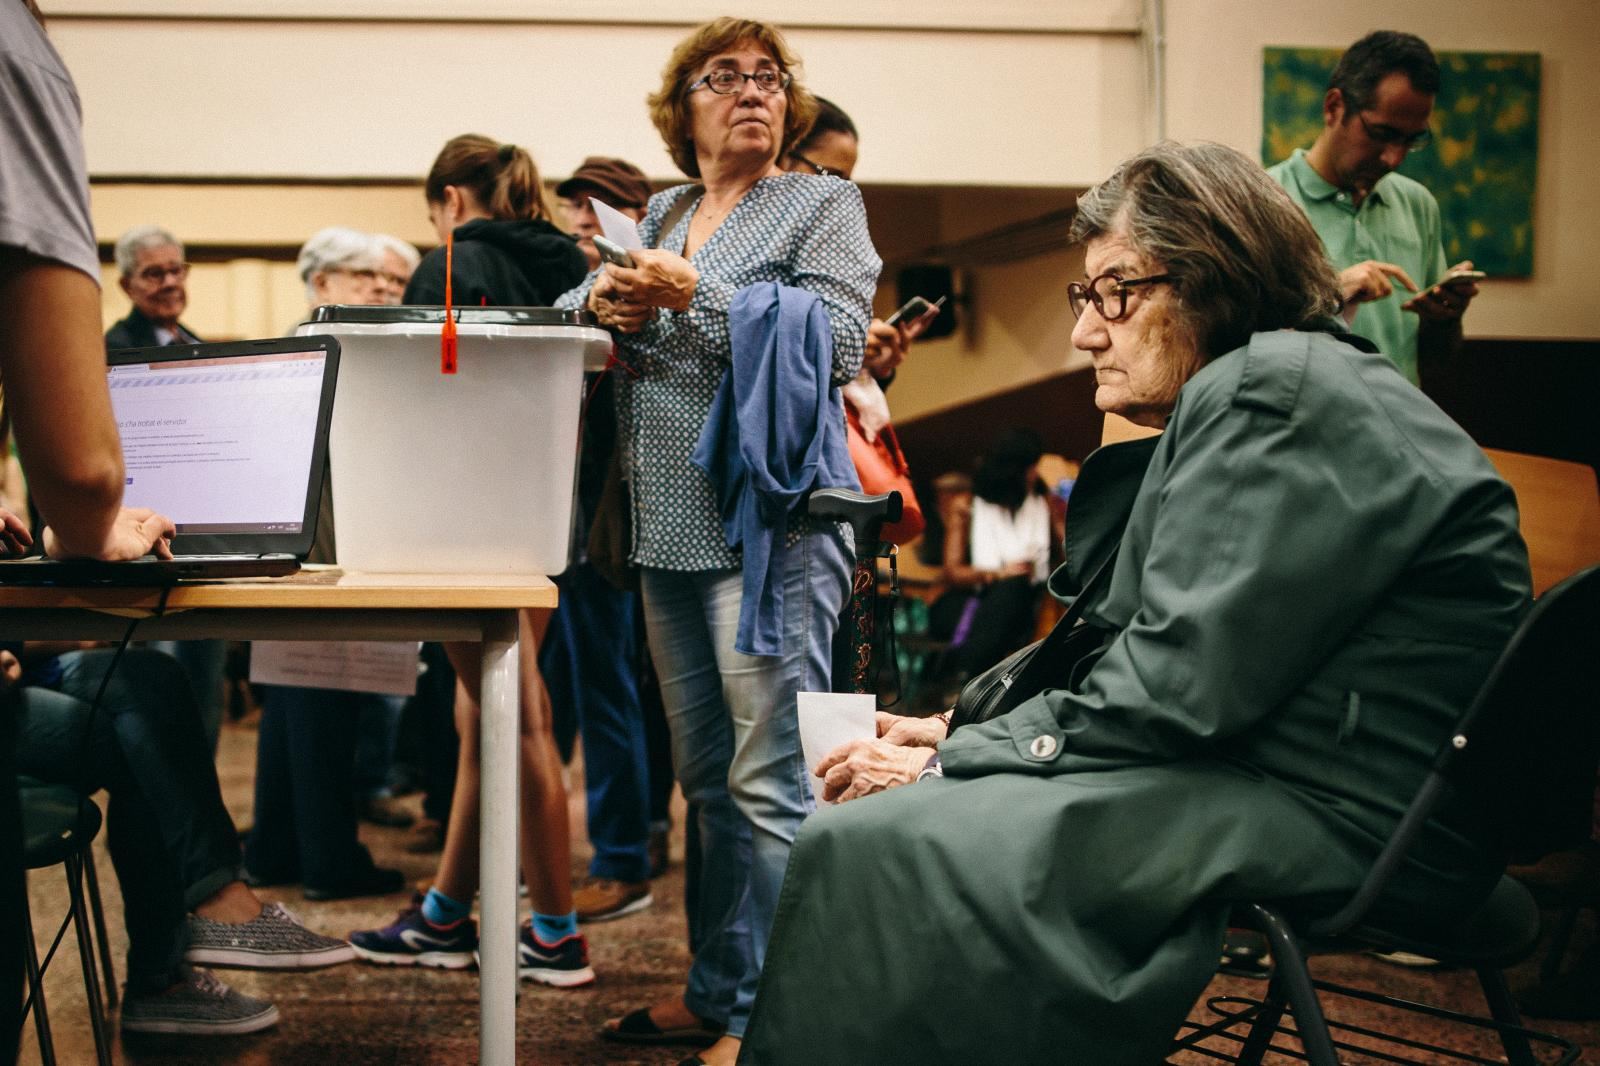 An elderly woman waits to cast her vote, as polices have shut down the Catalan online voting system. October 1st, 2017